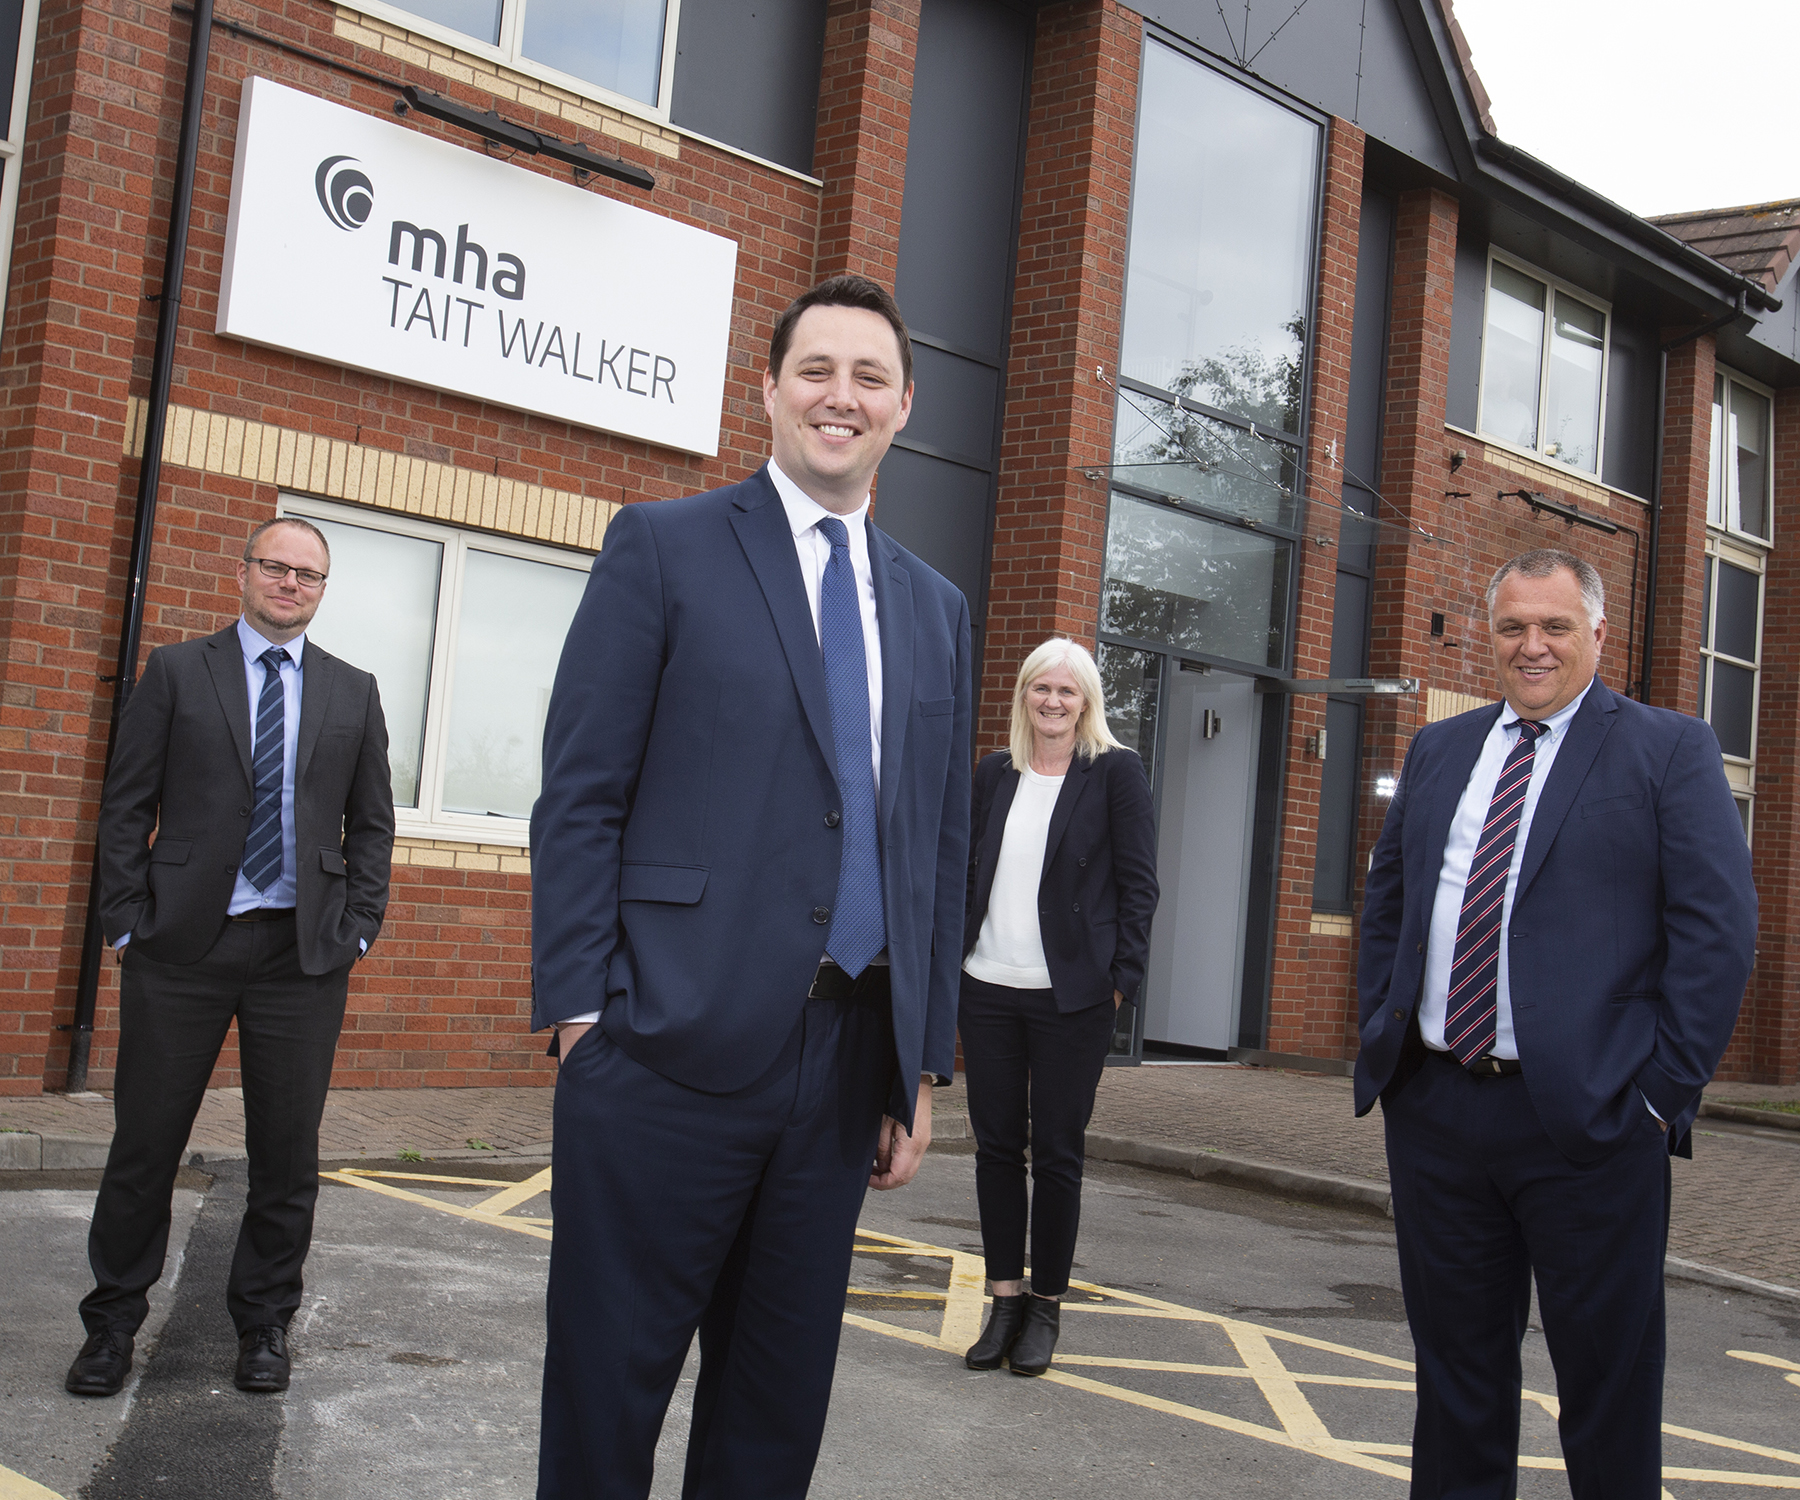 MHA Tait Walker¢s new office in Stockton to create new jobs and help Teesside businesses struggling with the fallout of the Coronavirus pandemic